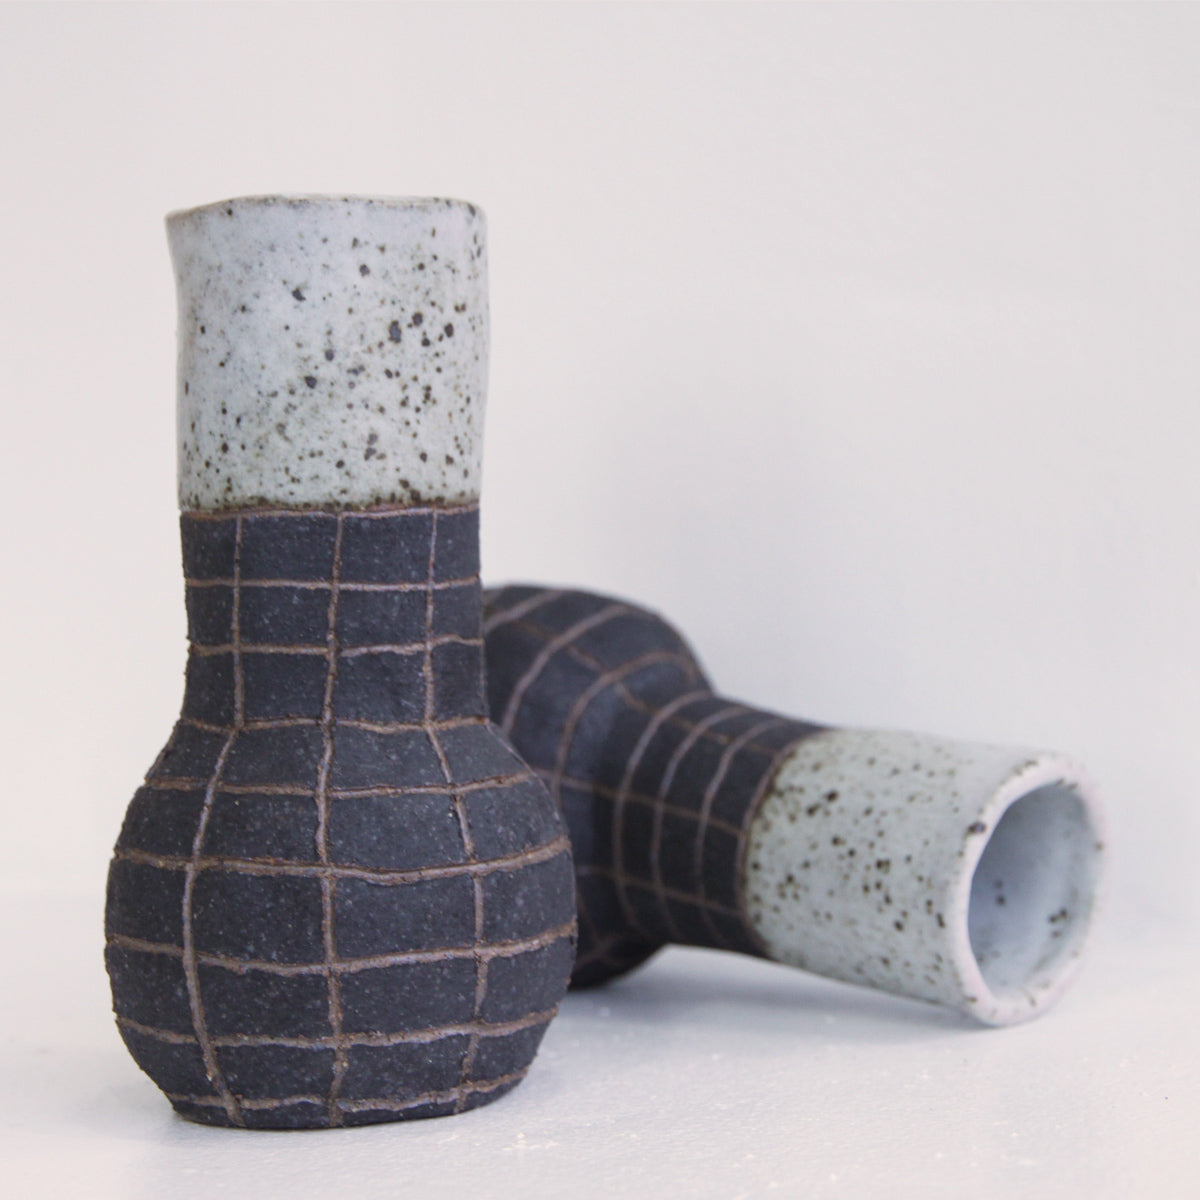 Tokkuri Grid Stem Vase | Chie Fujii - CHIECO Ceramics - Sustain - Gallery and Workspace | Art, Prints, Zines, Workshops | Chicago, IL